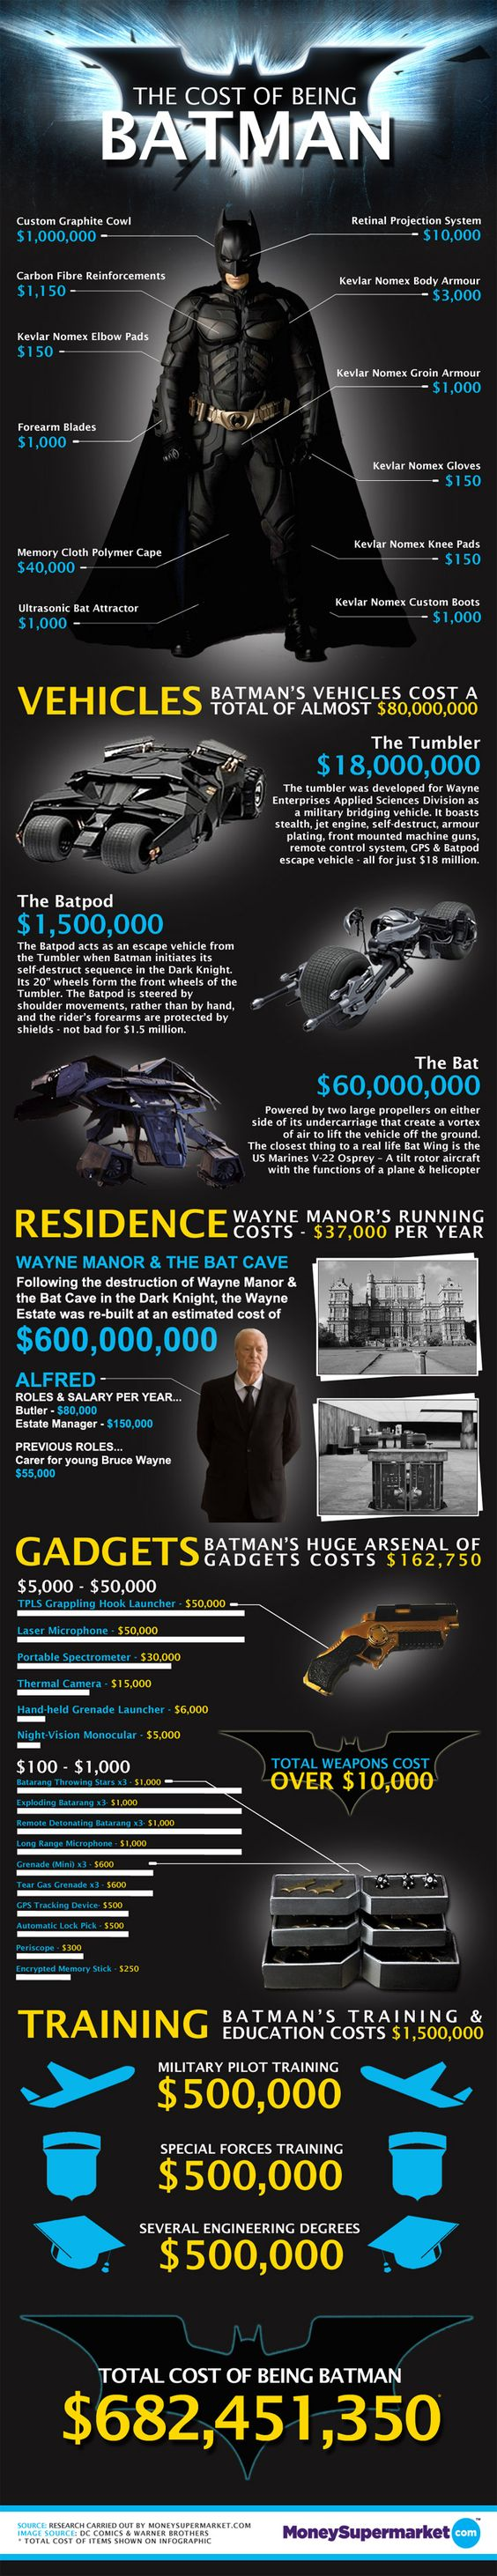 The Cost of Being Batman [Infographic]